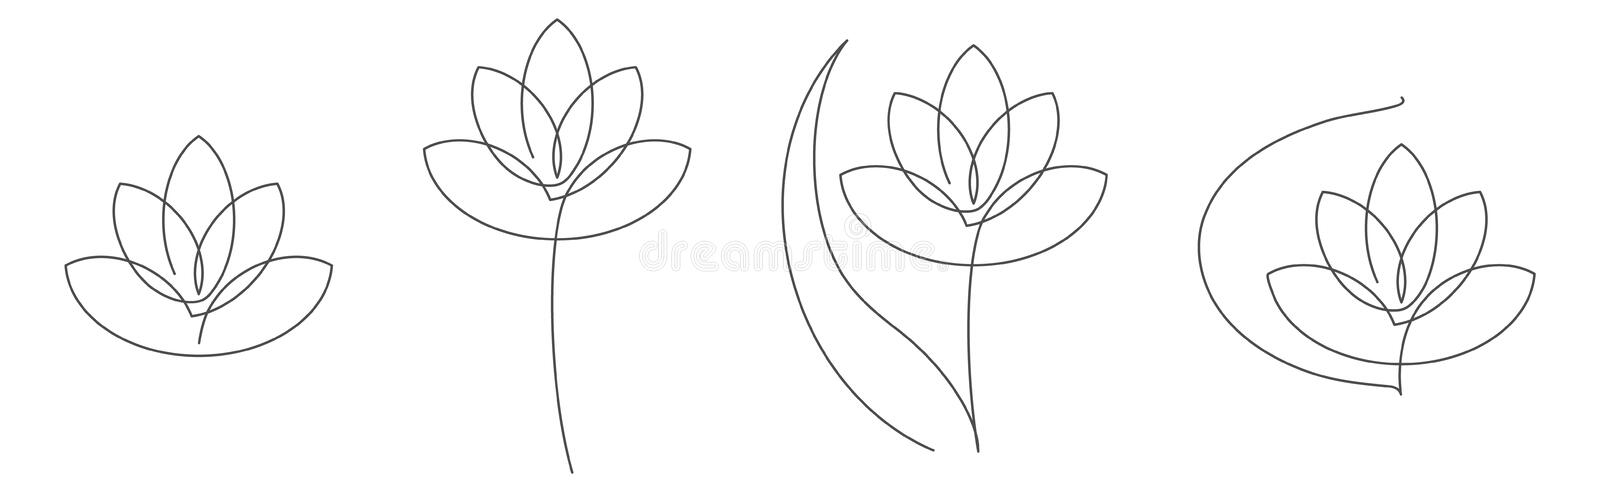 Flower lotus continuous line vector illustration set with editable stroke for floral design or logo. royalty free illustration